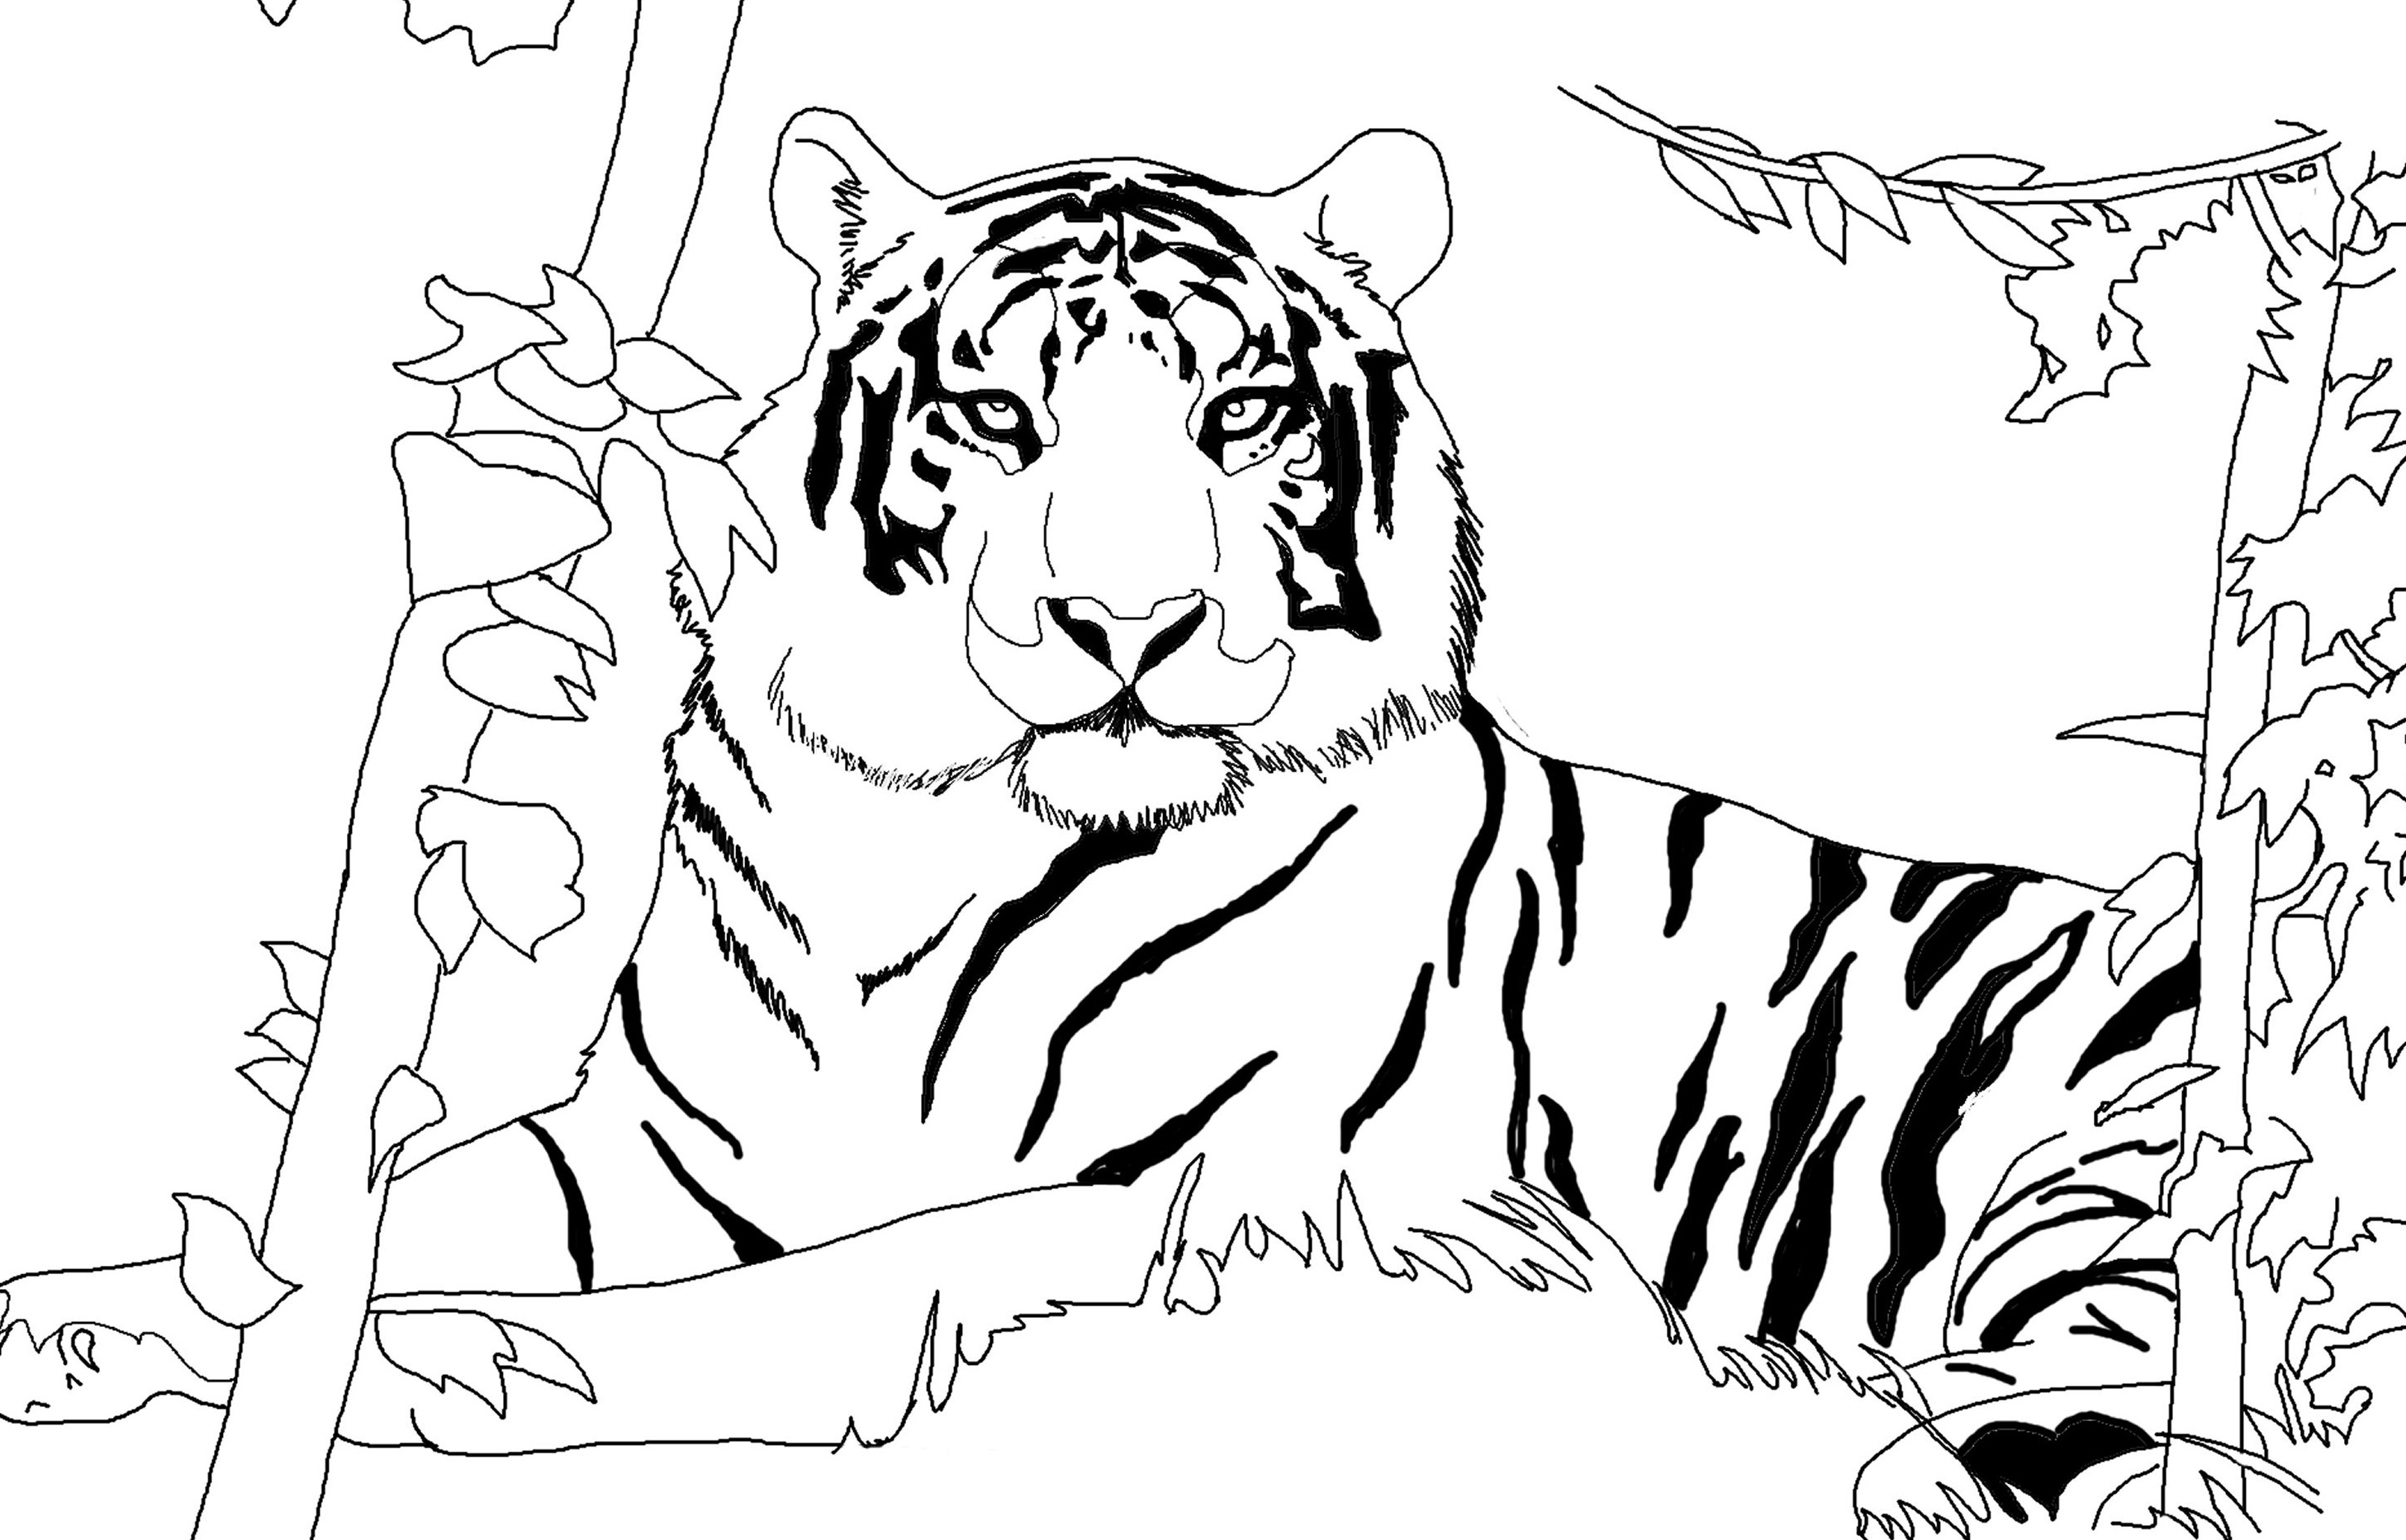 Free Coloring Pages Download : Siberian Tiger Drawing At Getdrawings Free  For Personal Use Of White